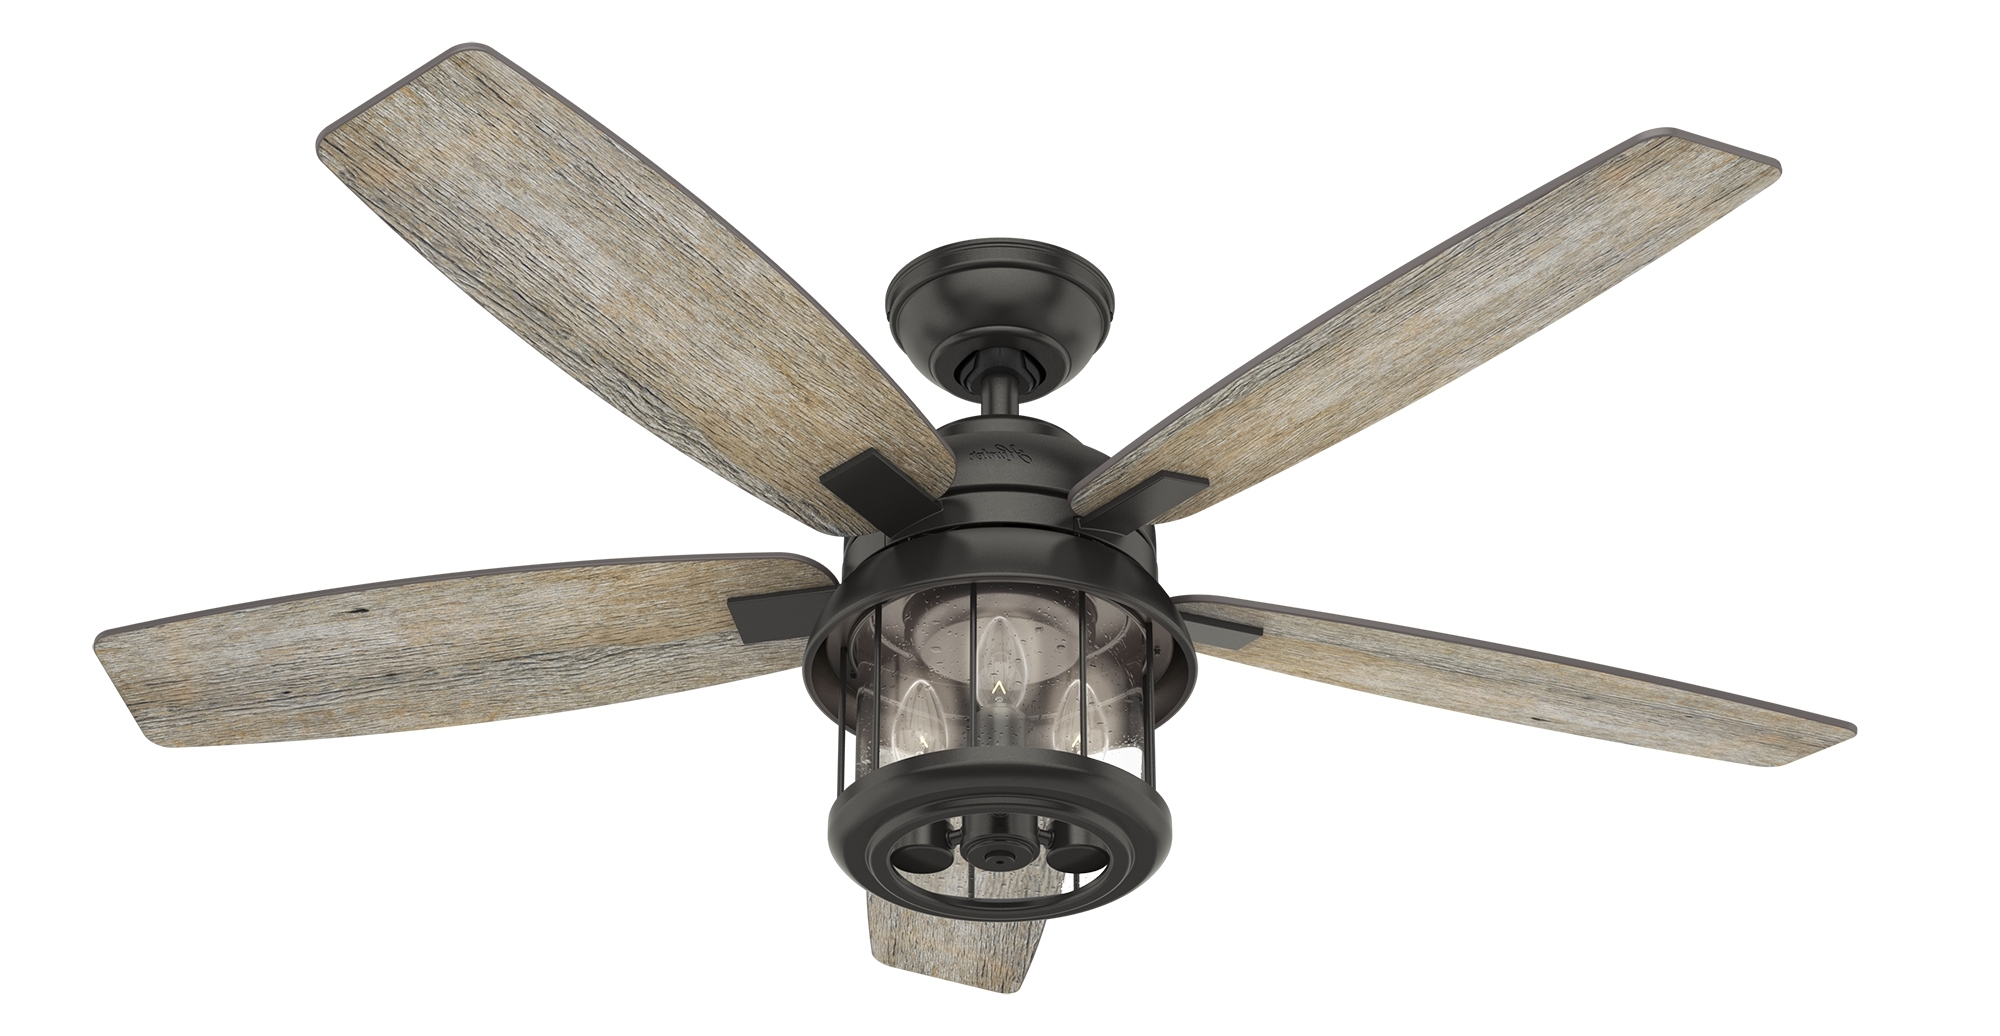 2019 Create A Seaside Vibe With Coastal Ceiling Fans – Hunter Fan Blog Regarding Coastal Outdoor Ceiling Fans (View 4 of 20)